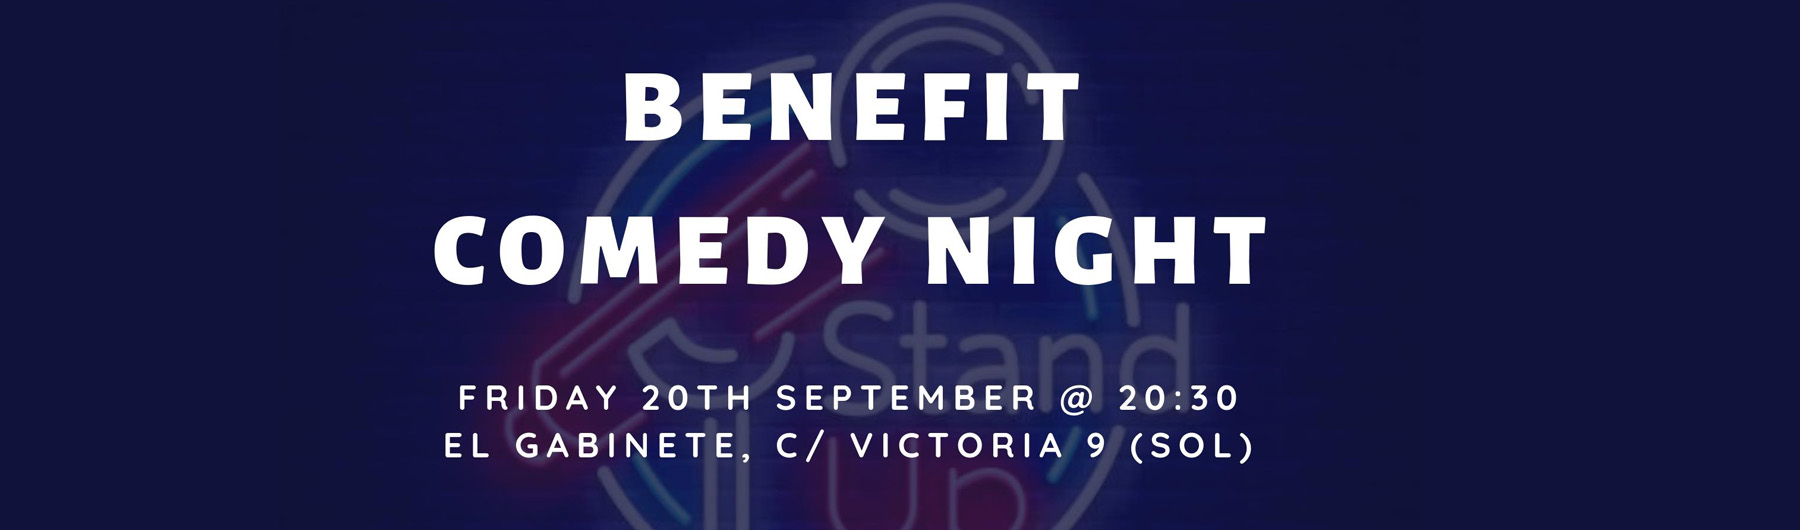 Benefit Comedy Night